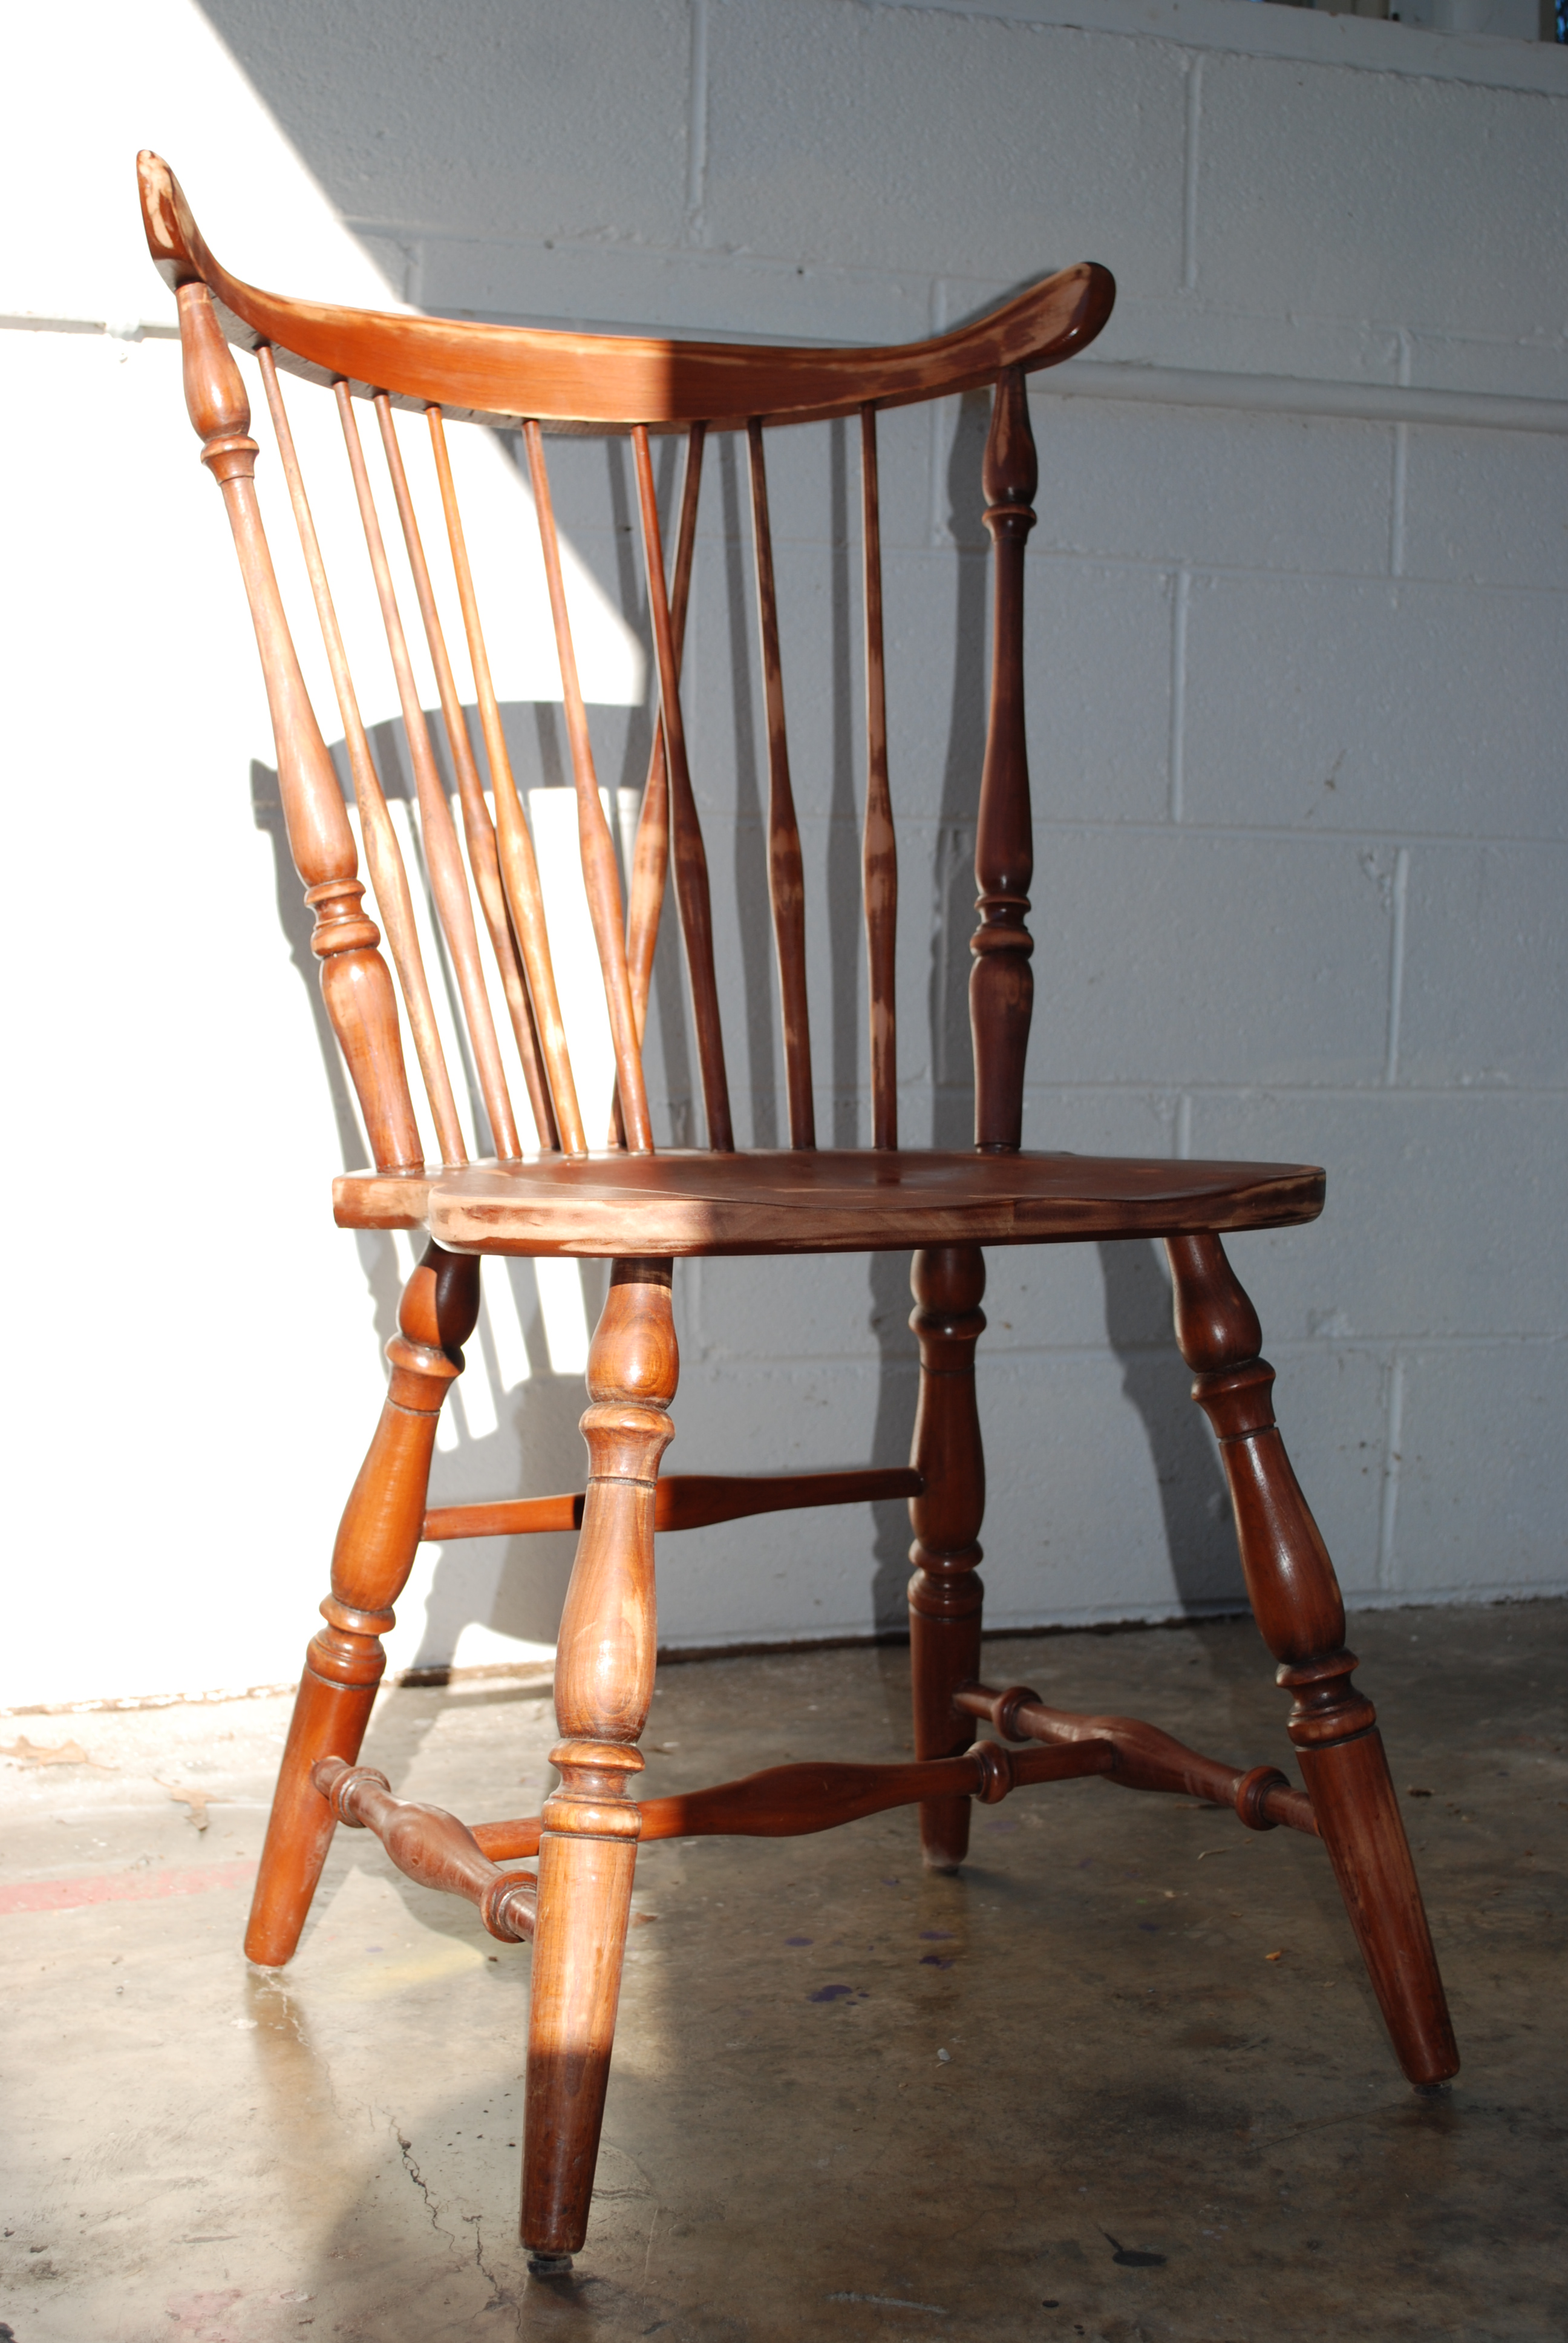 Then, We Painted The Chairs With Black Milk Paint. We Used Milk Paint  Because, Historically, Craftsmen Used It On Windsor Chairs. Also, Itu0027s  Durable With A ...